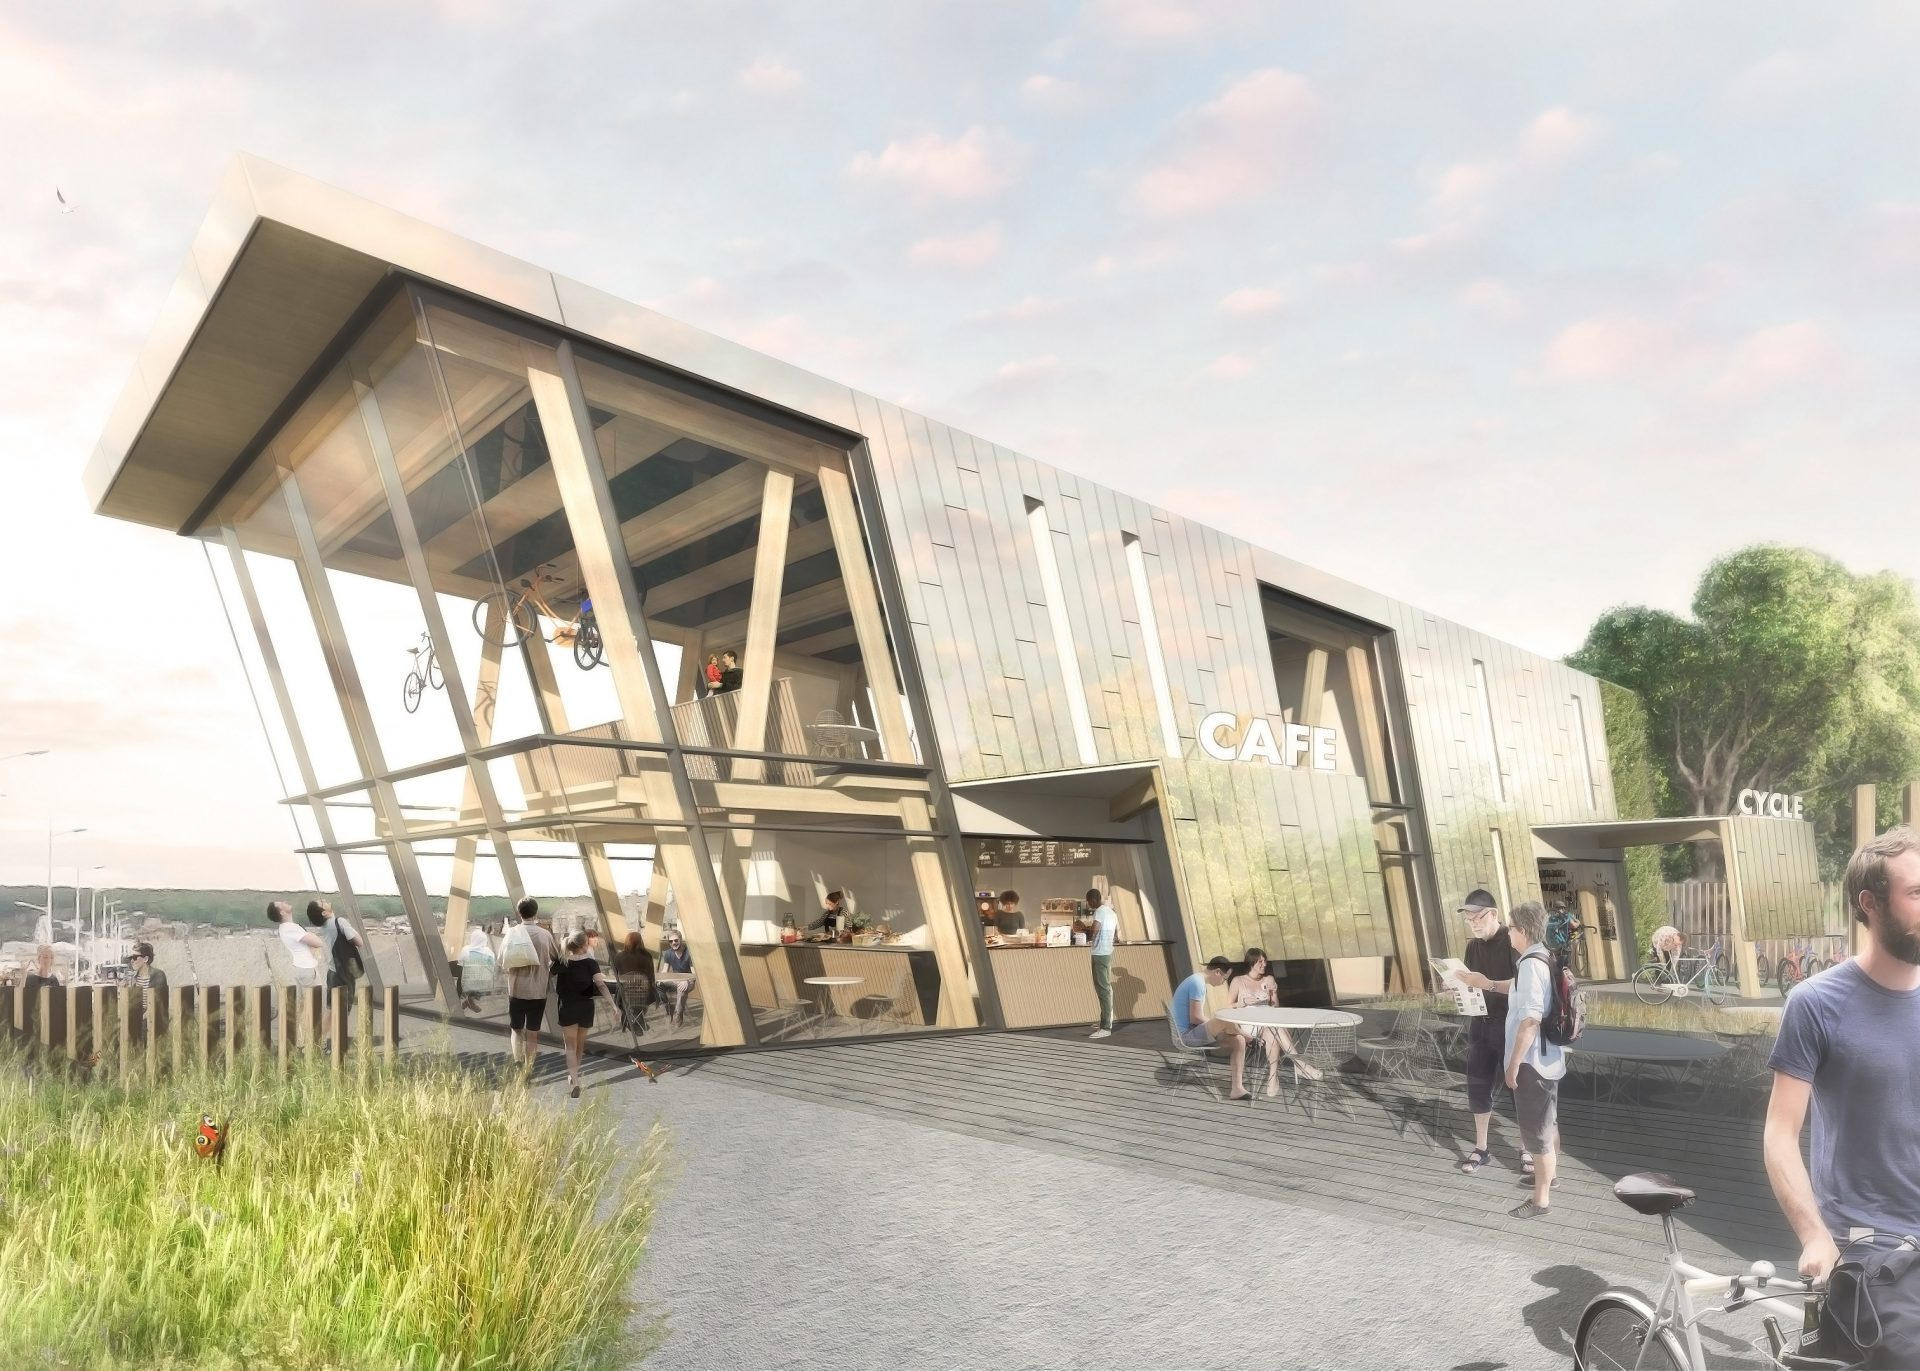 Weston-super-Mare Cycle Activities Centre Cafe Cladding Laminated Timber Frame Hipster